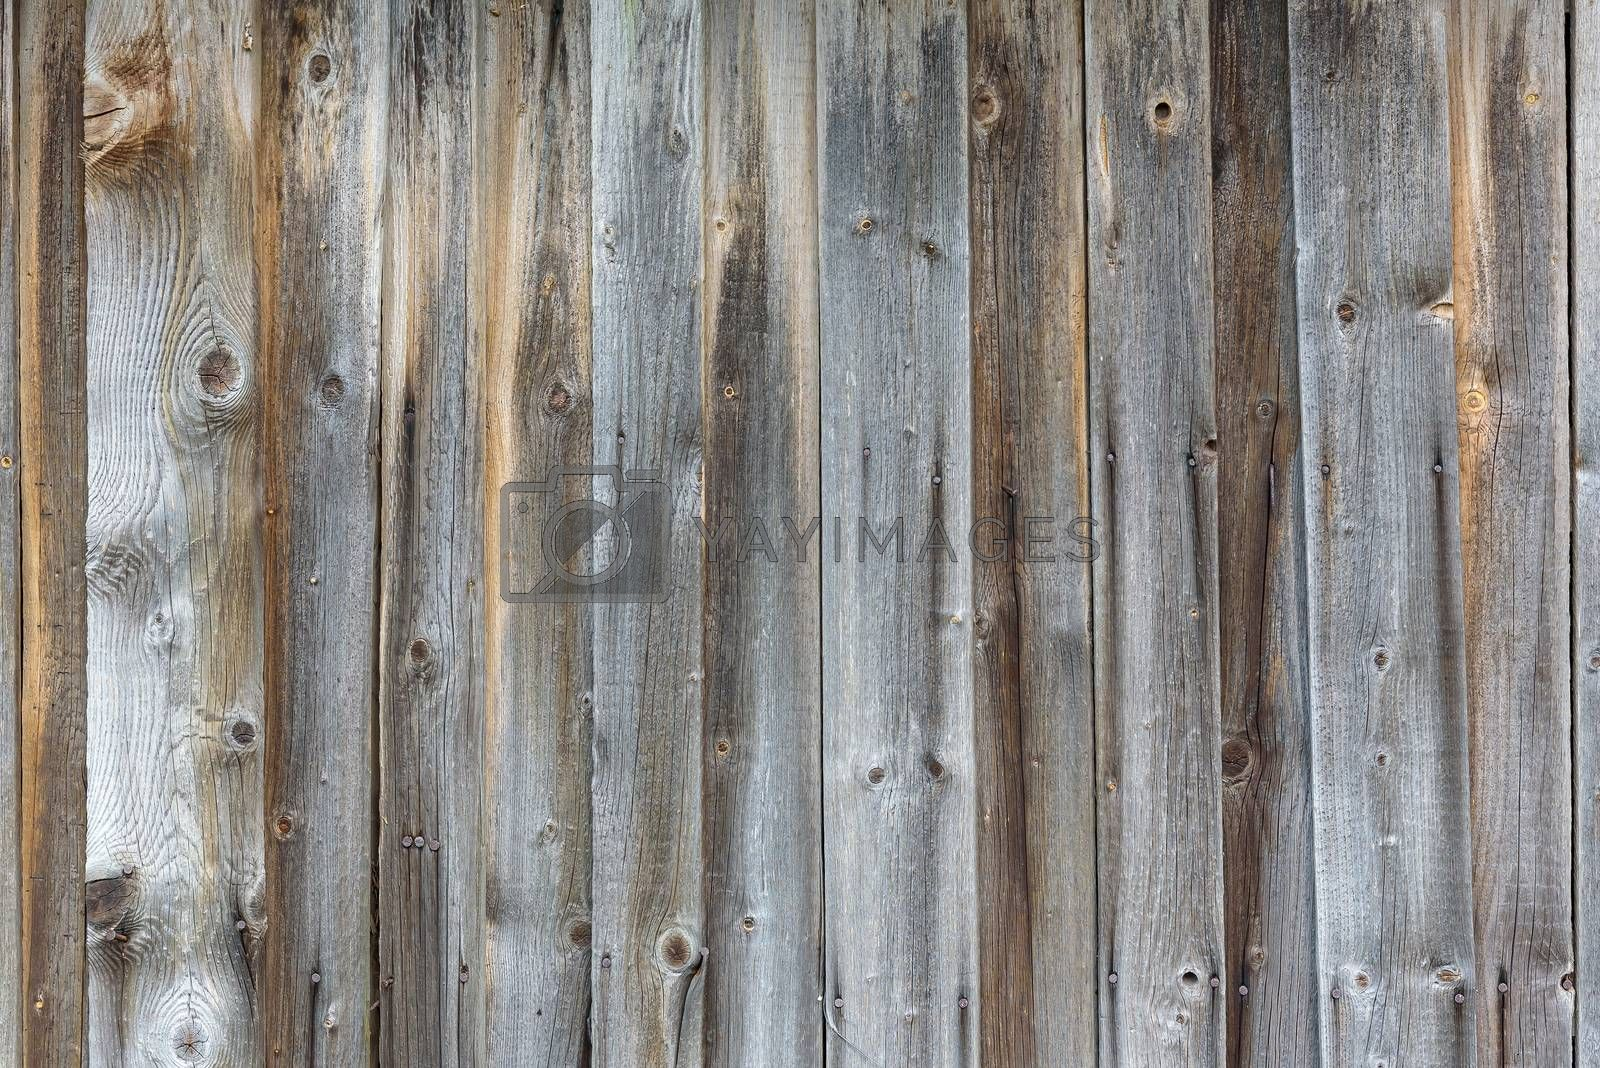 Royalty free image of Old wooden planks background by mkos83